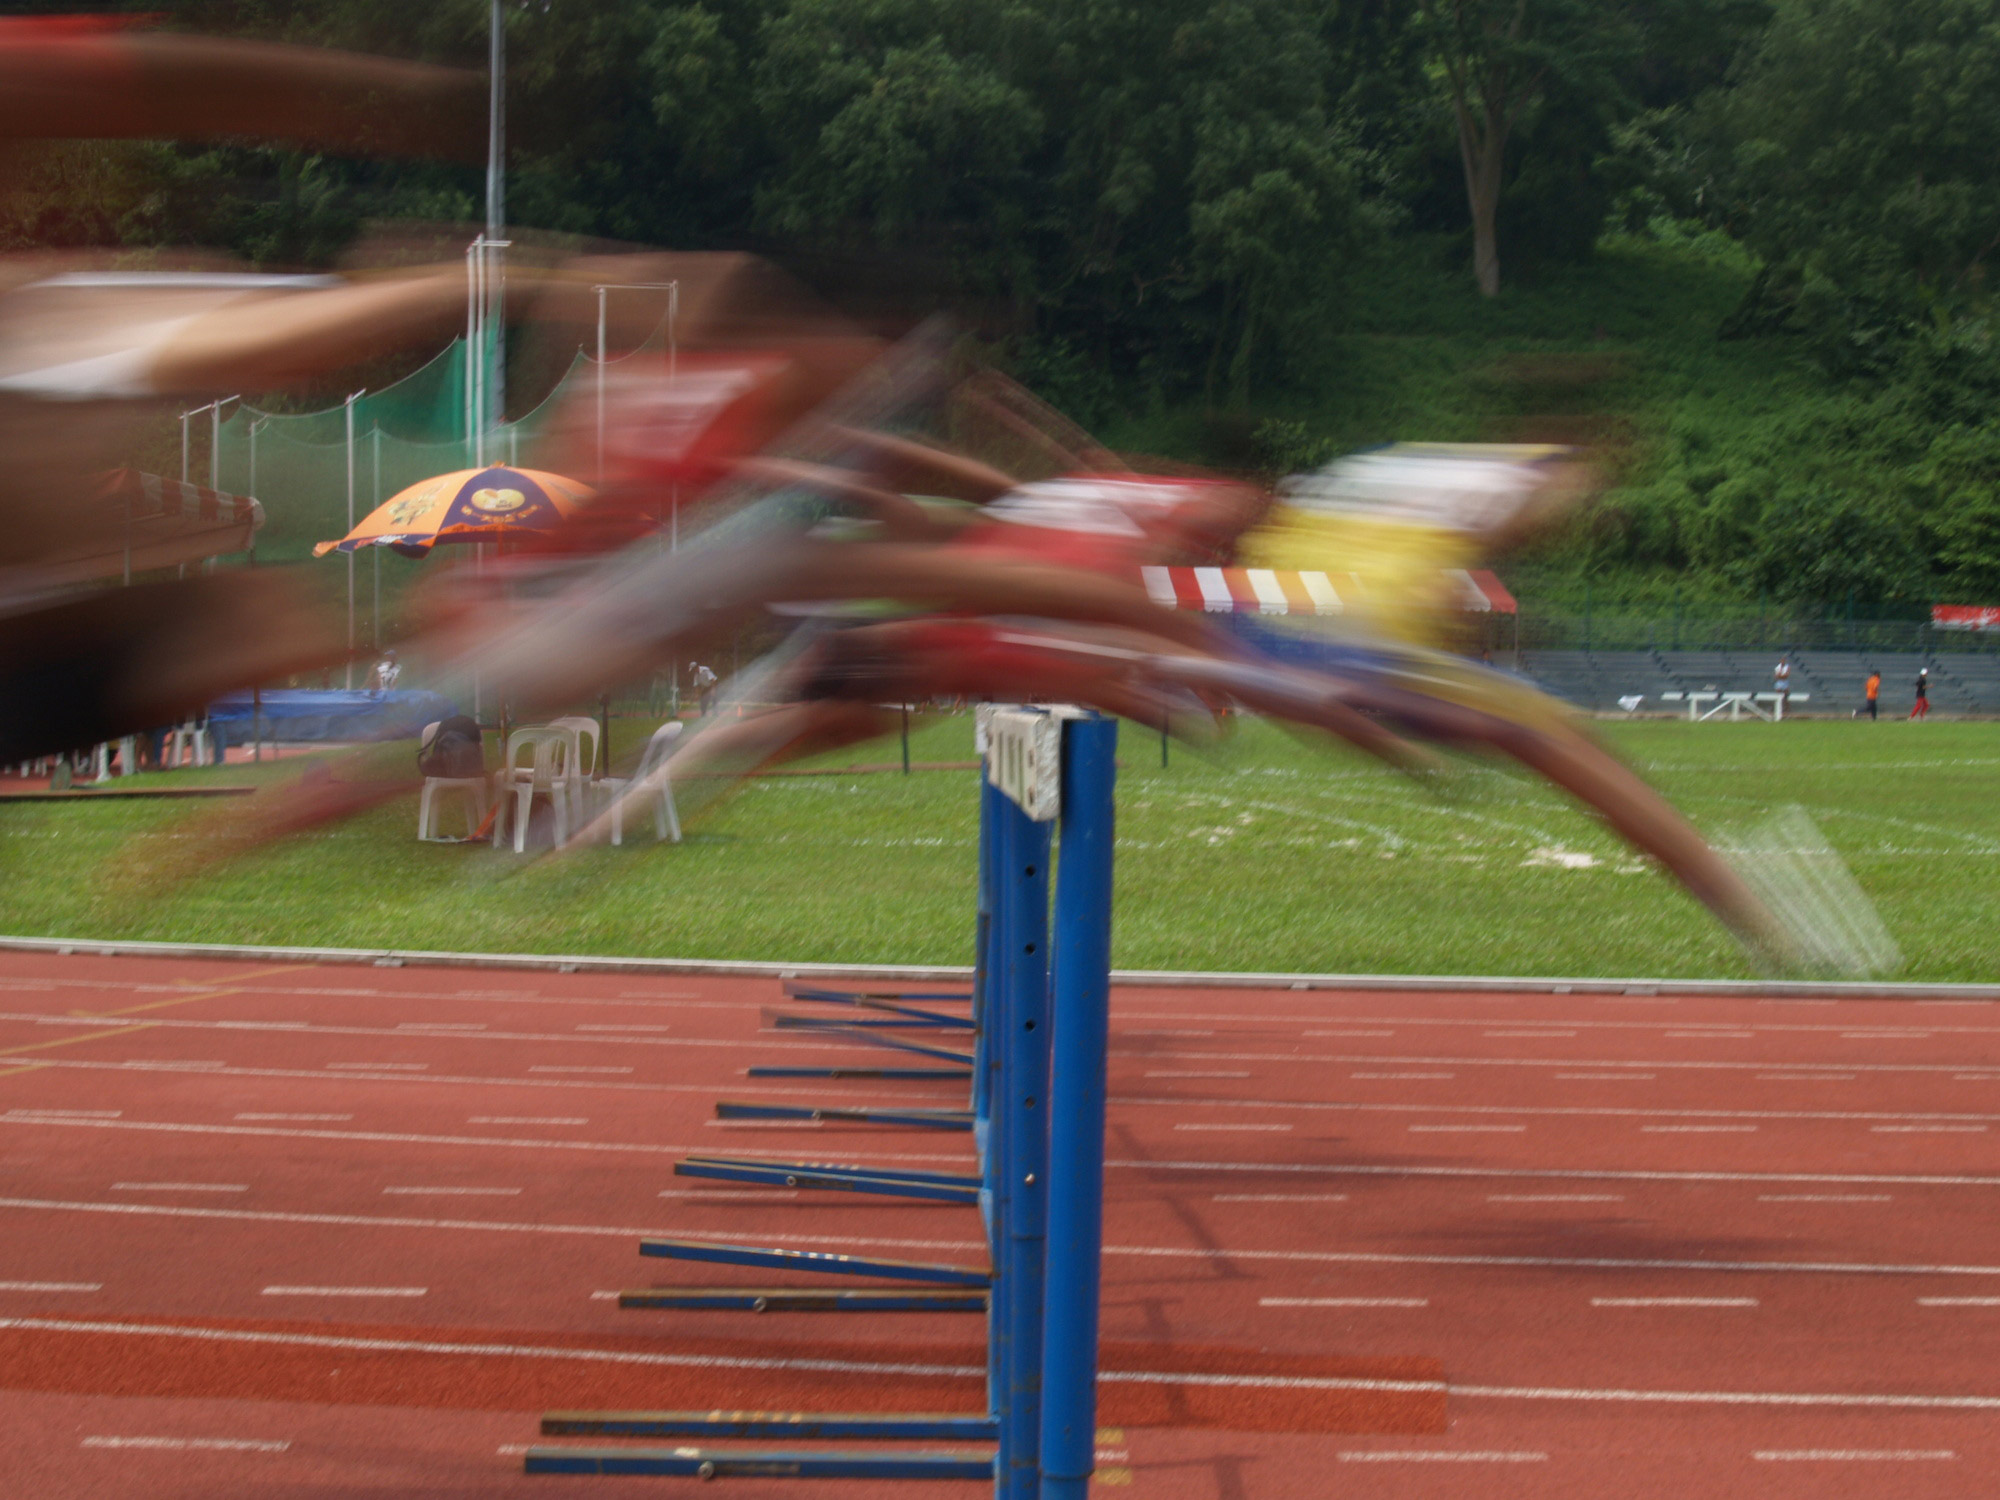 blurry photo of runners jumping over a hurdle